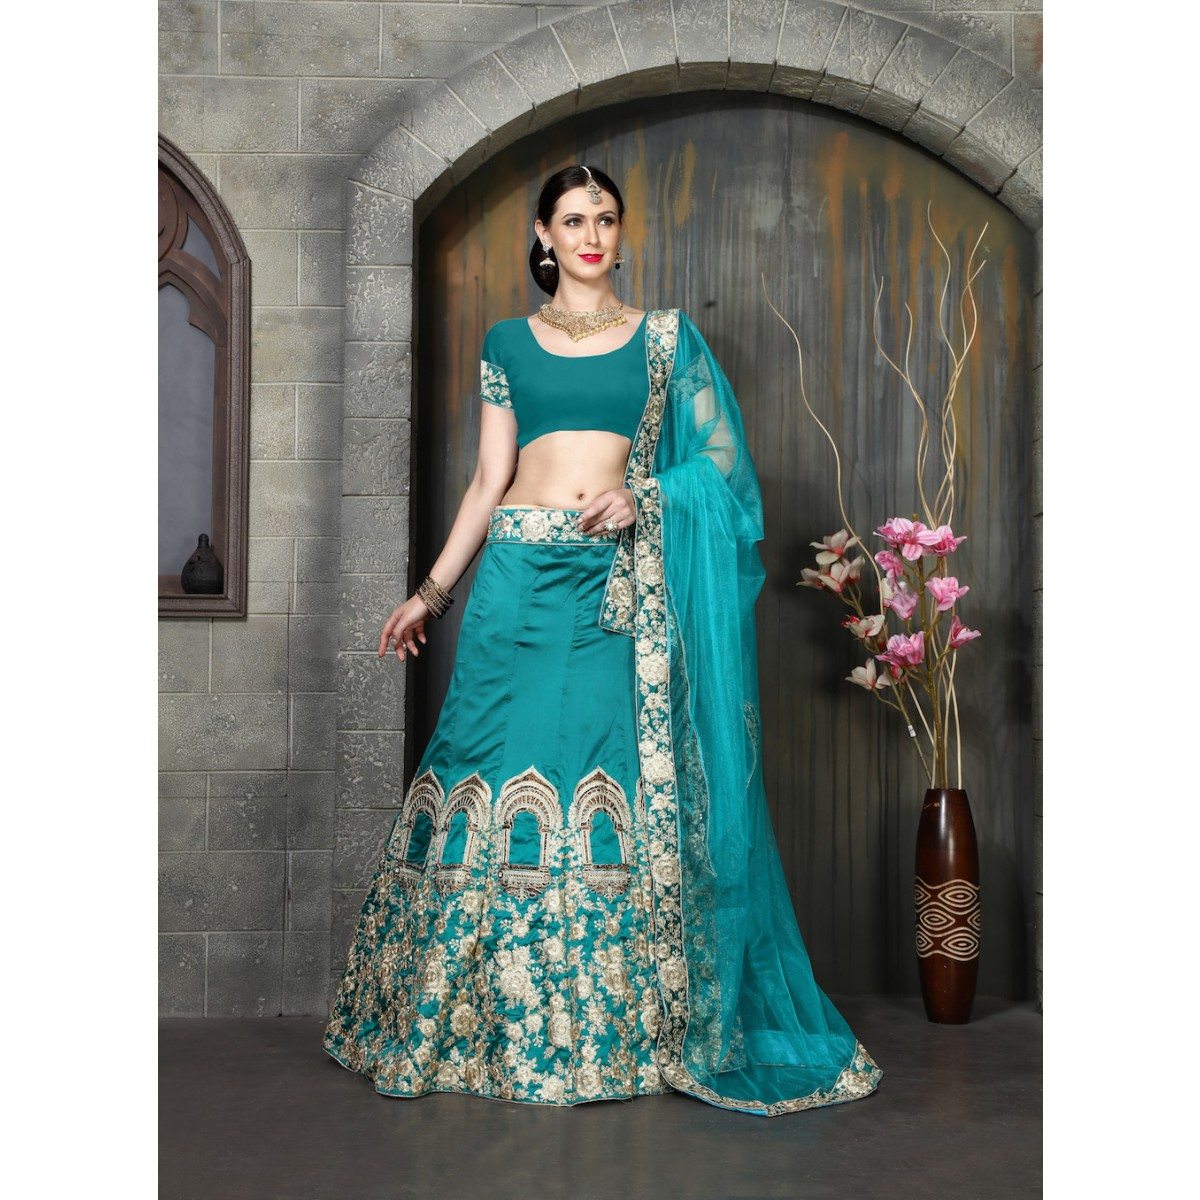 Turquoise Blue Lehenga for a Bride